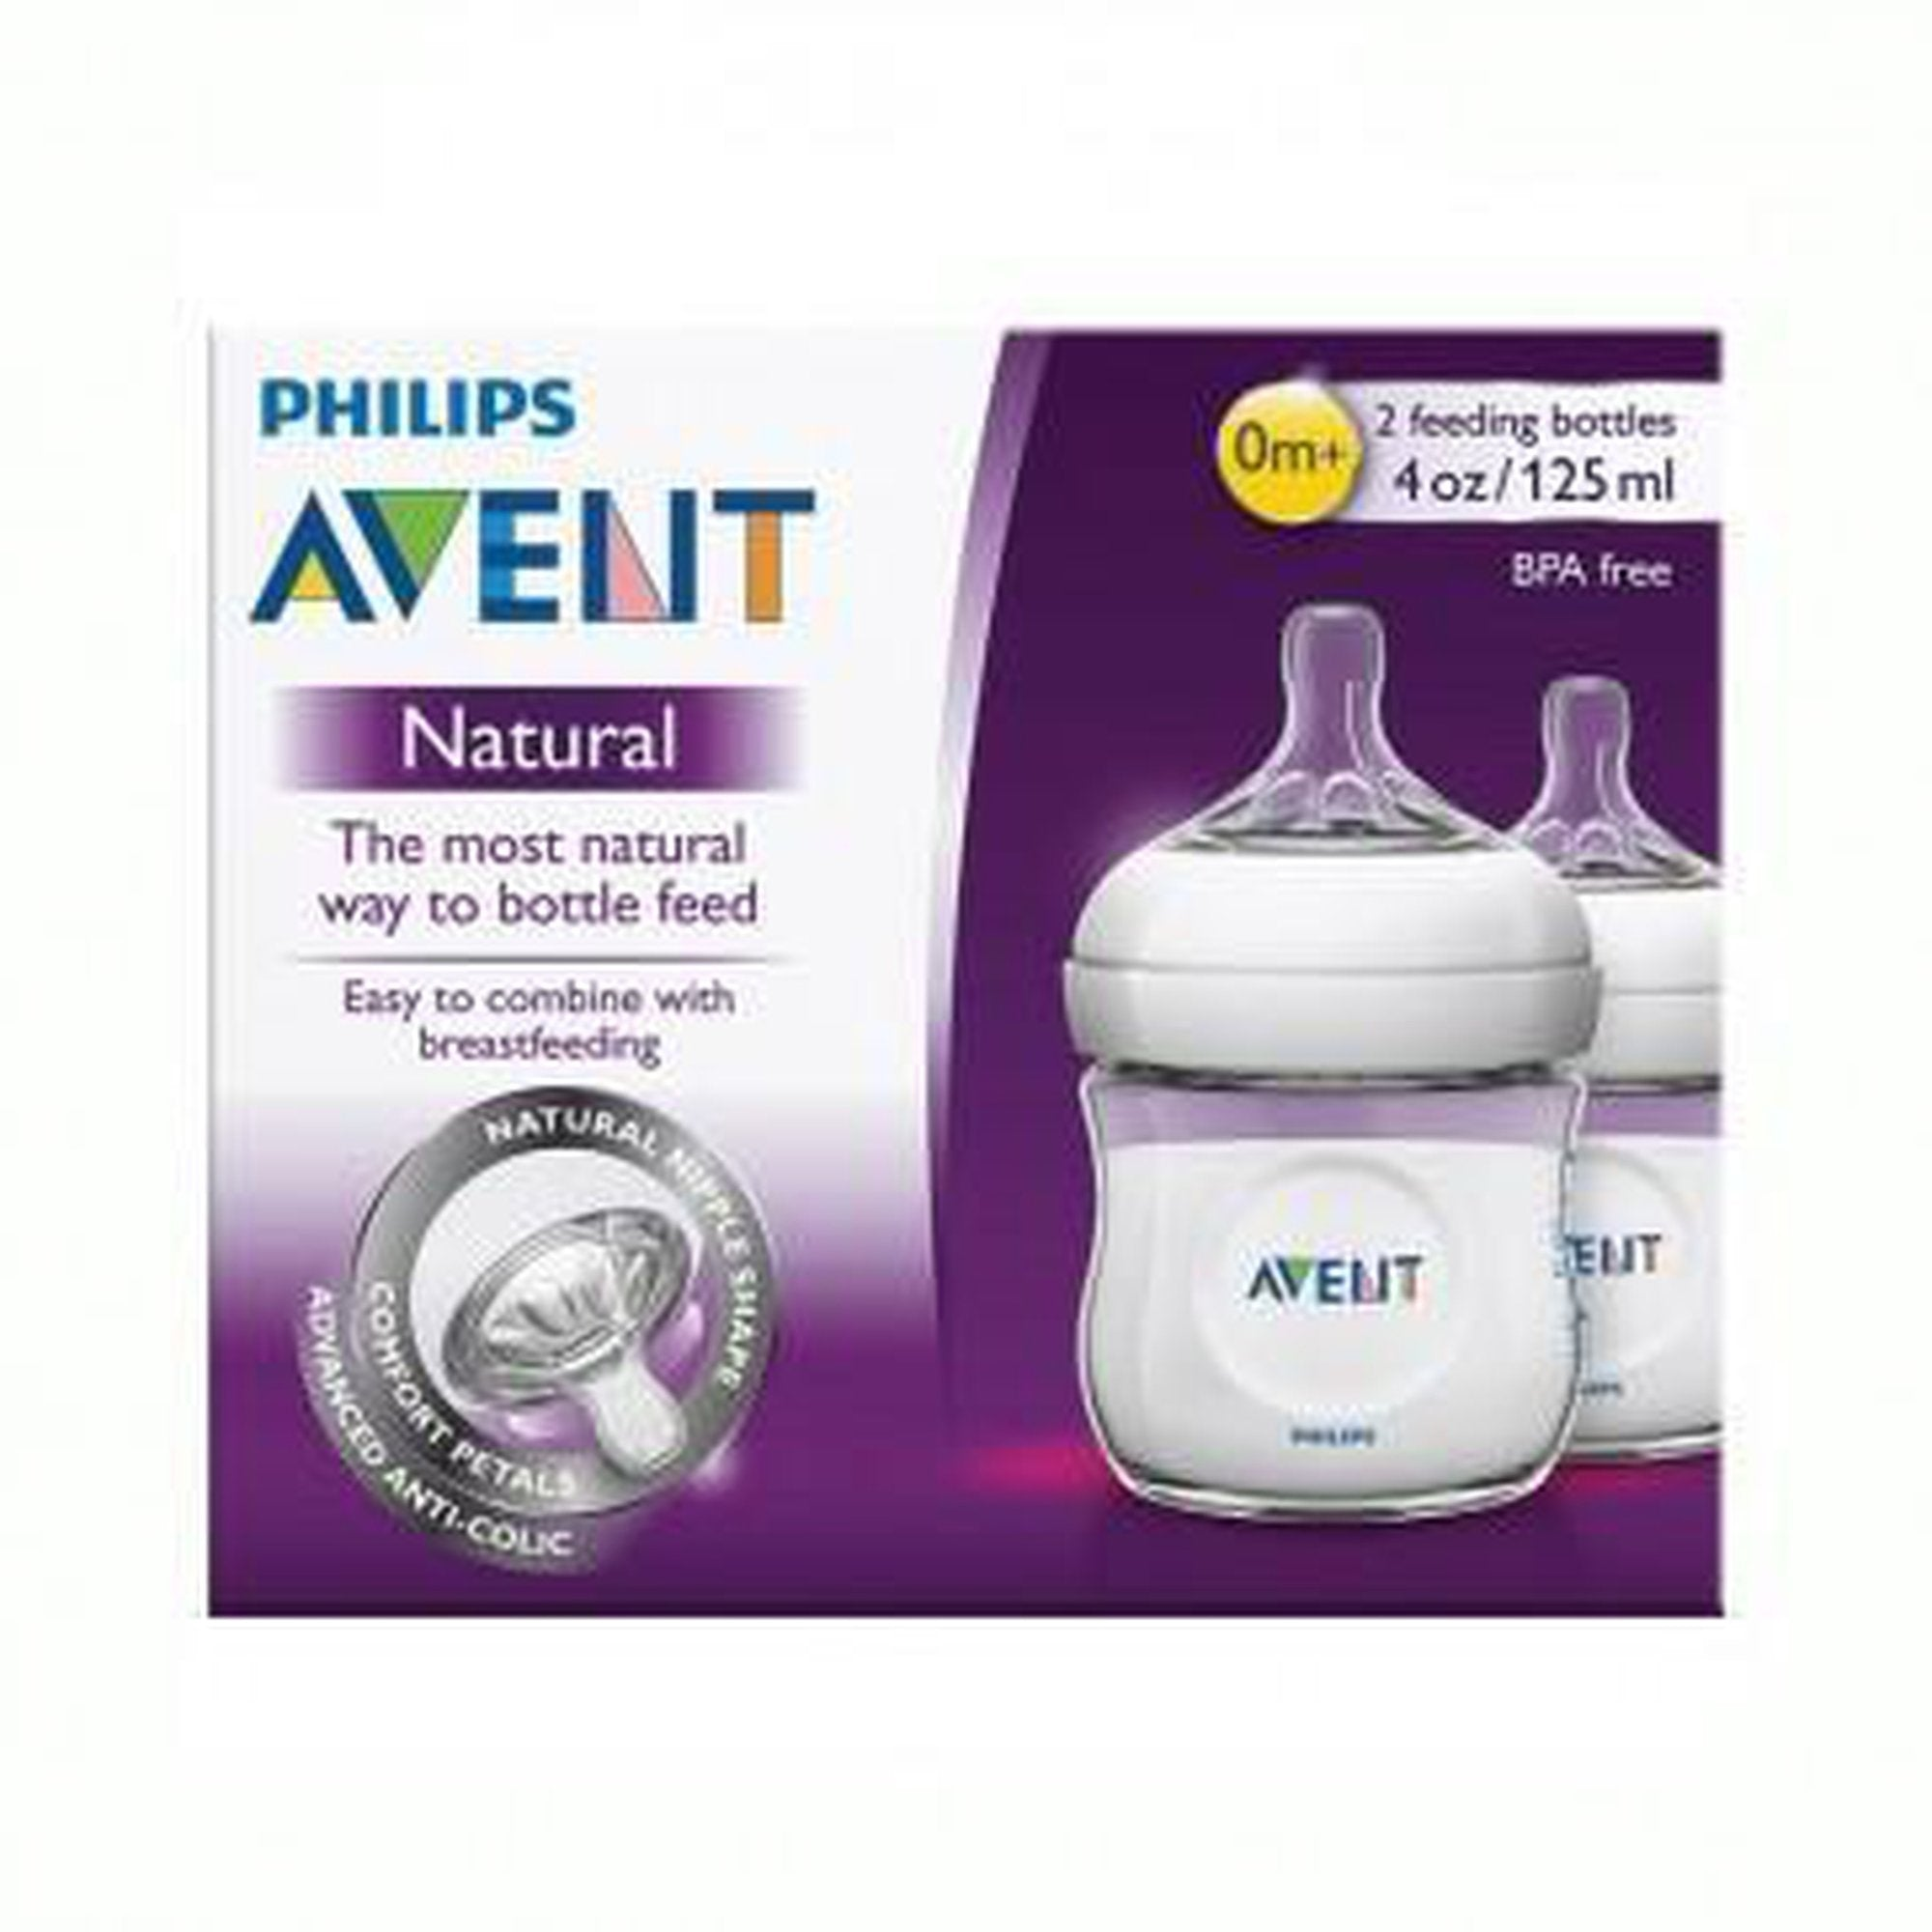 Avent Natural Feeding Bottle 125ml x 2-Bottles-Mother and Baby Shop Kenya's #1 Online Baby Shop